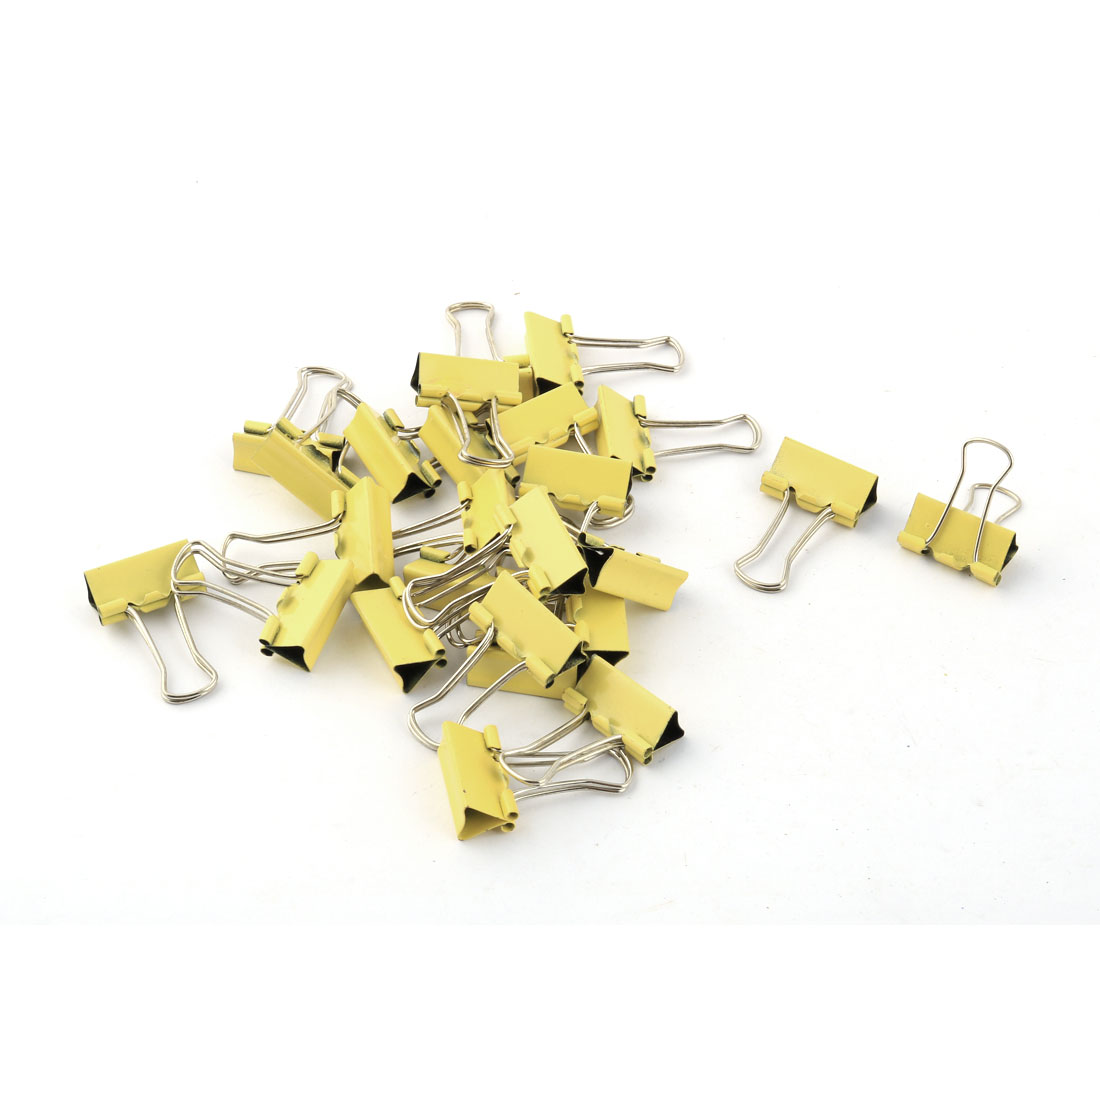 Office Supplies Student Folder Paper Money Bulldog Clip Yellow Silver Tone 25pcs